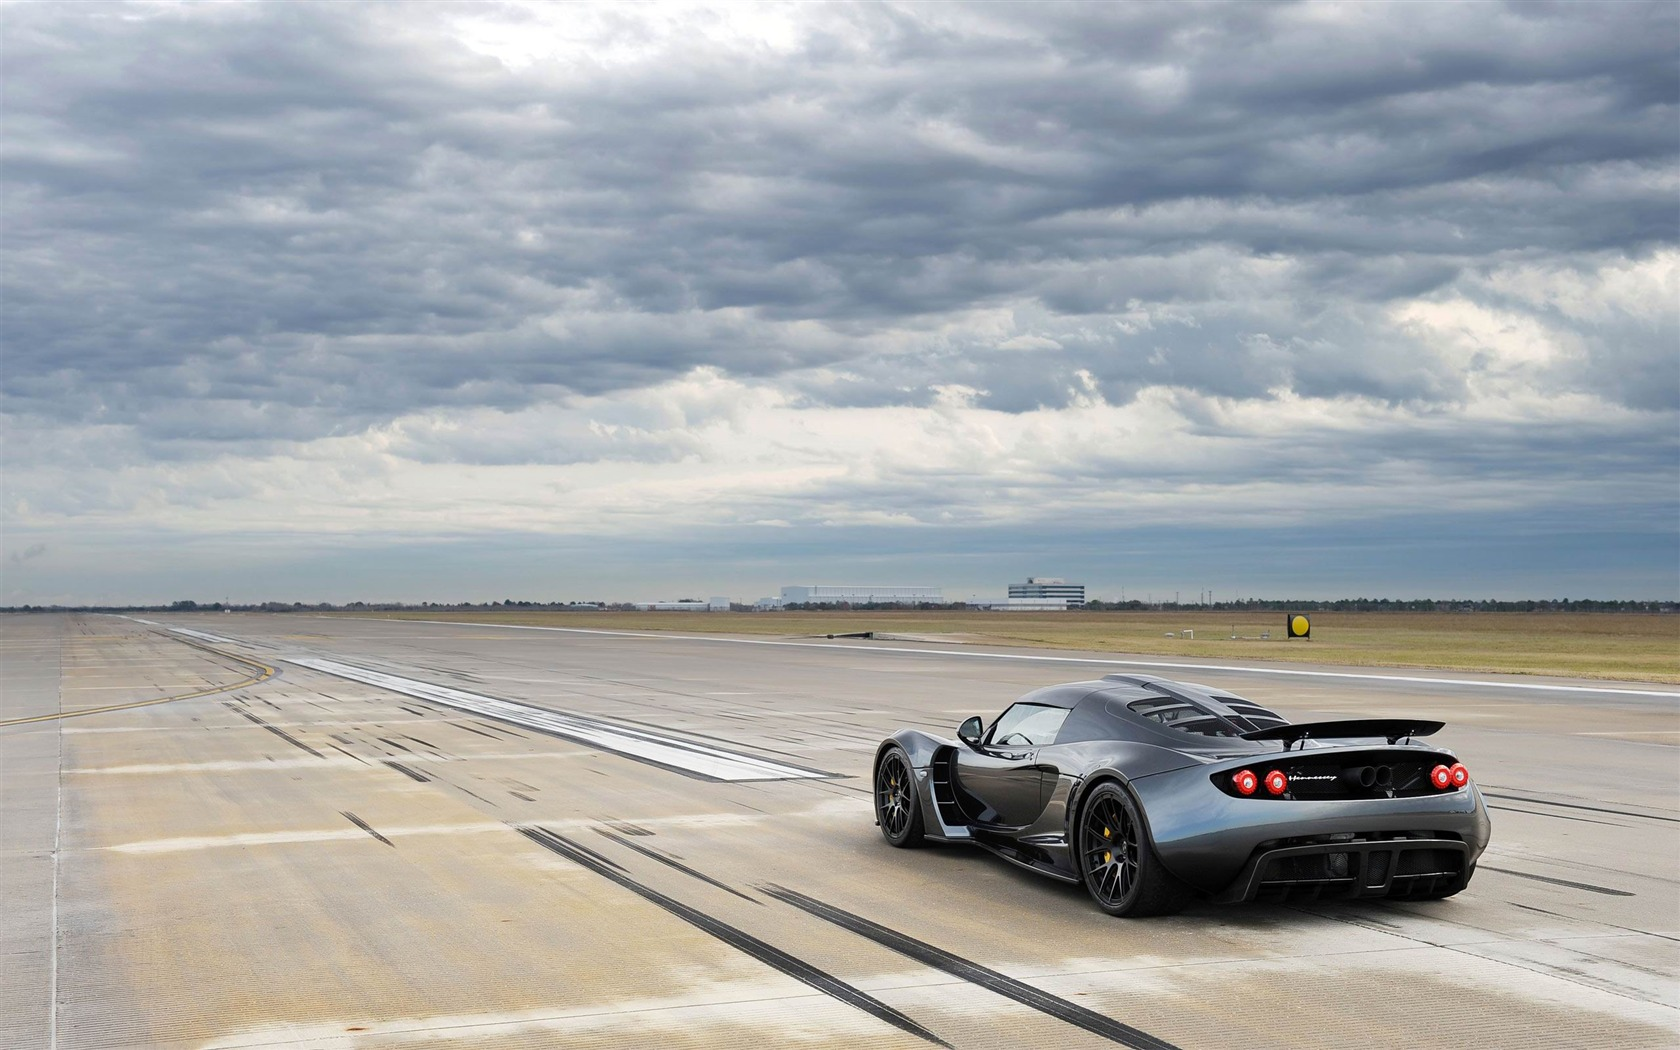 Hennessey Venom GT HD Wallpaper   HD Wallpapers   9to5Wallpapers 1680x1050